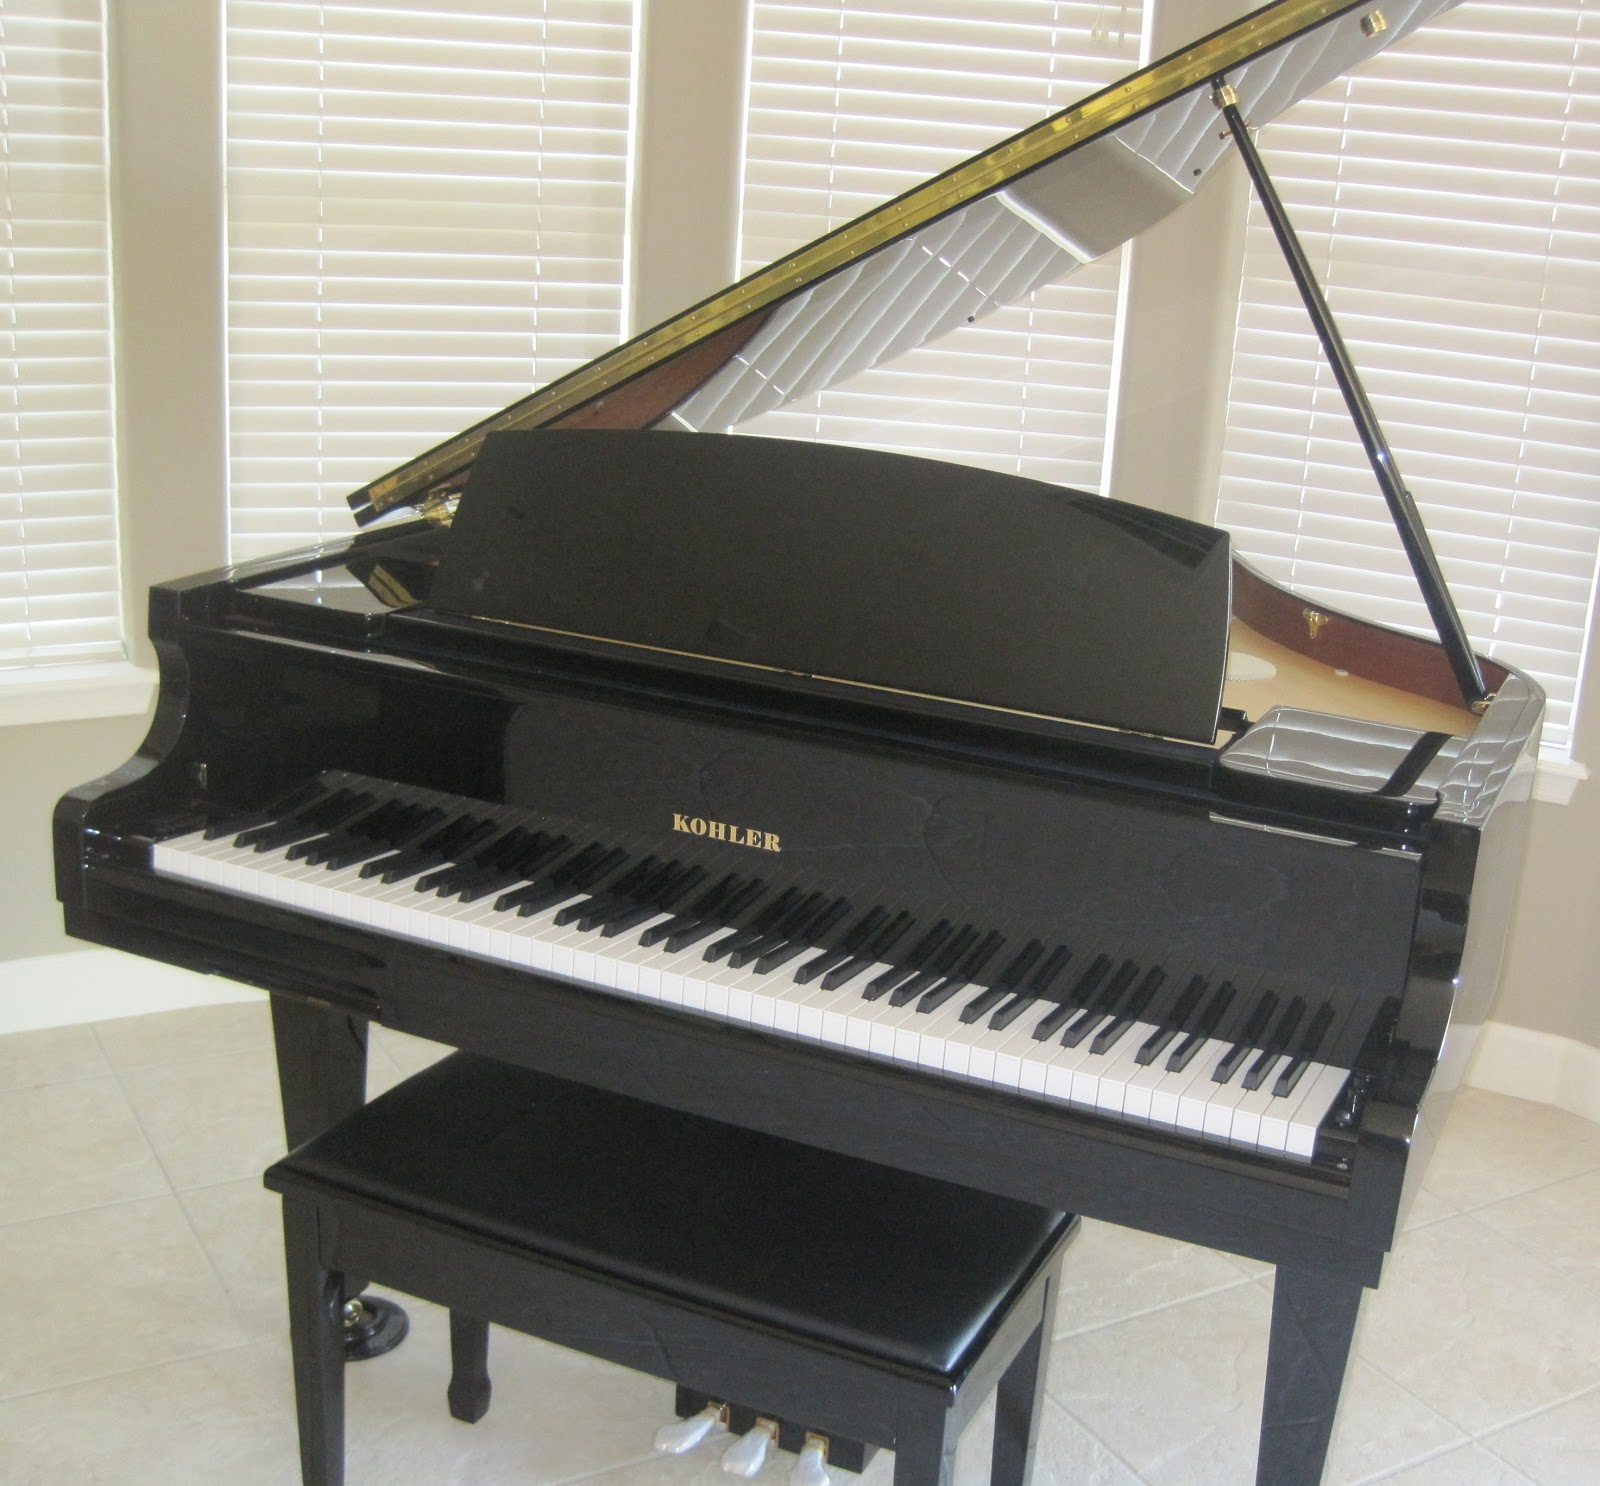 Az piano reviews review kohler kd7 digital baby grand Size of baby grand piano